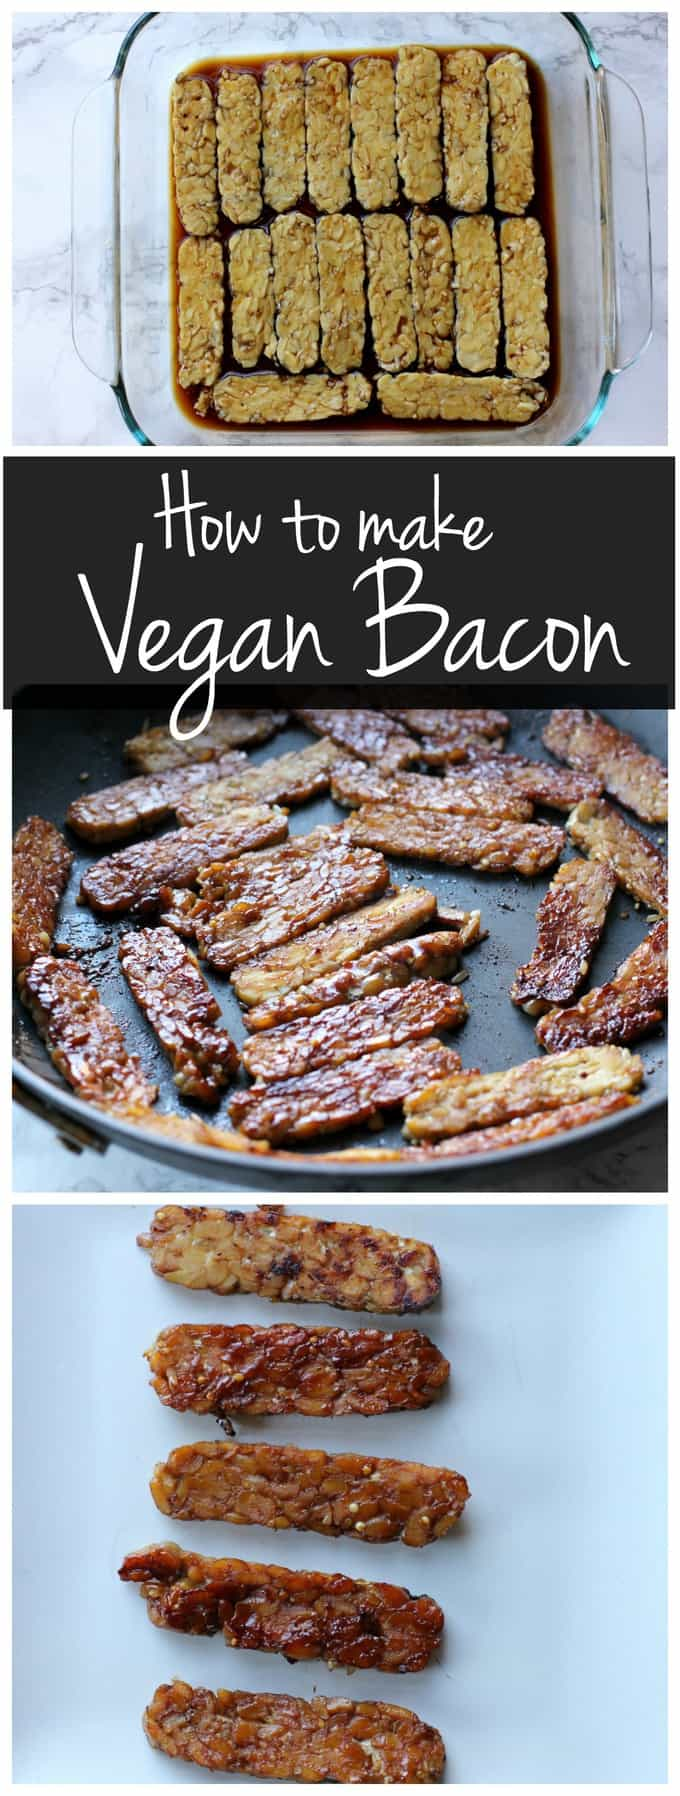 Tempeh Bacon Recipe